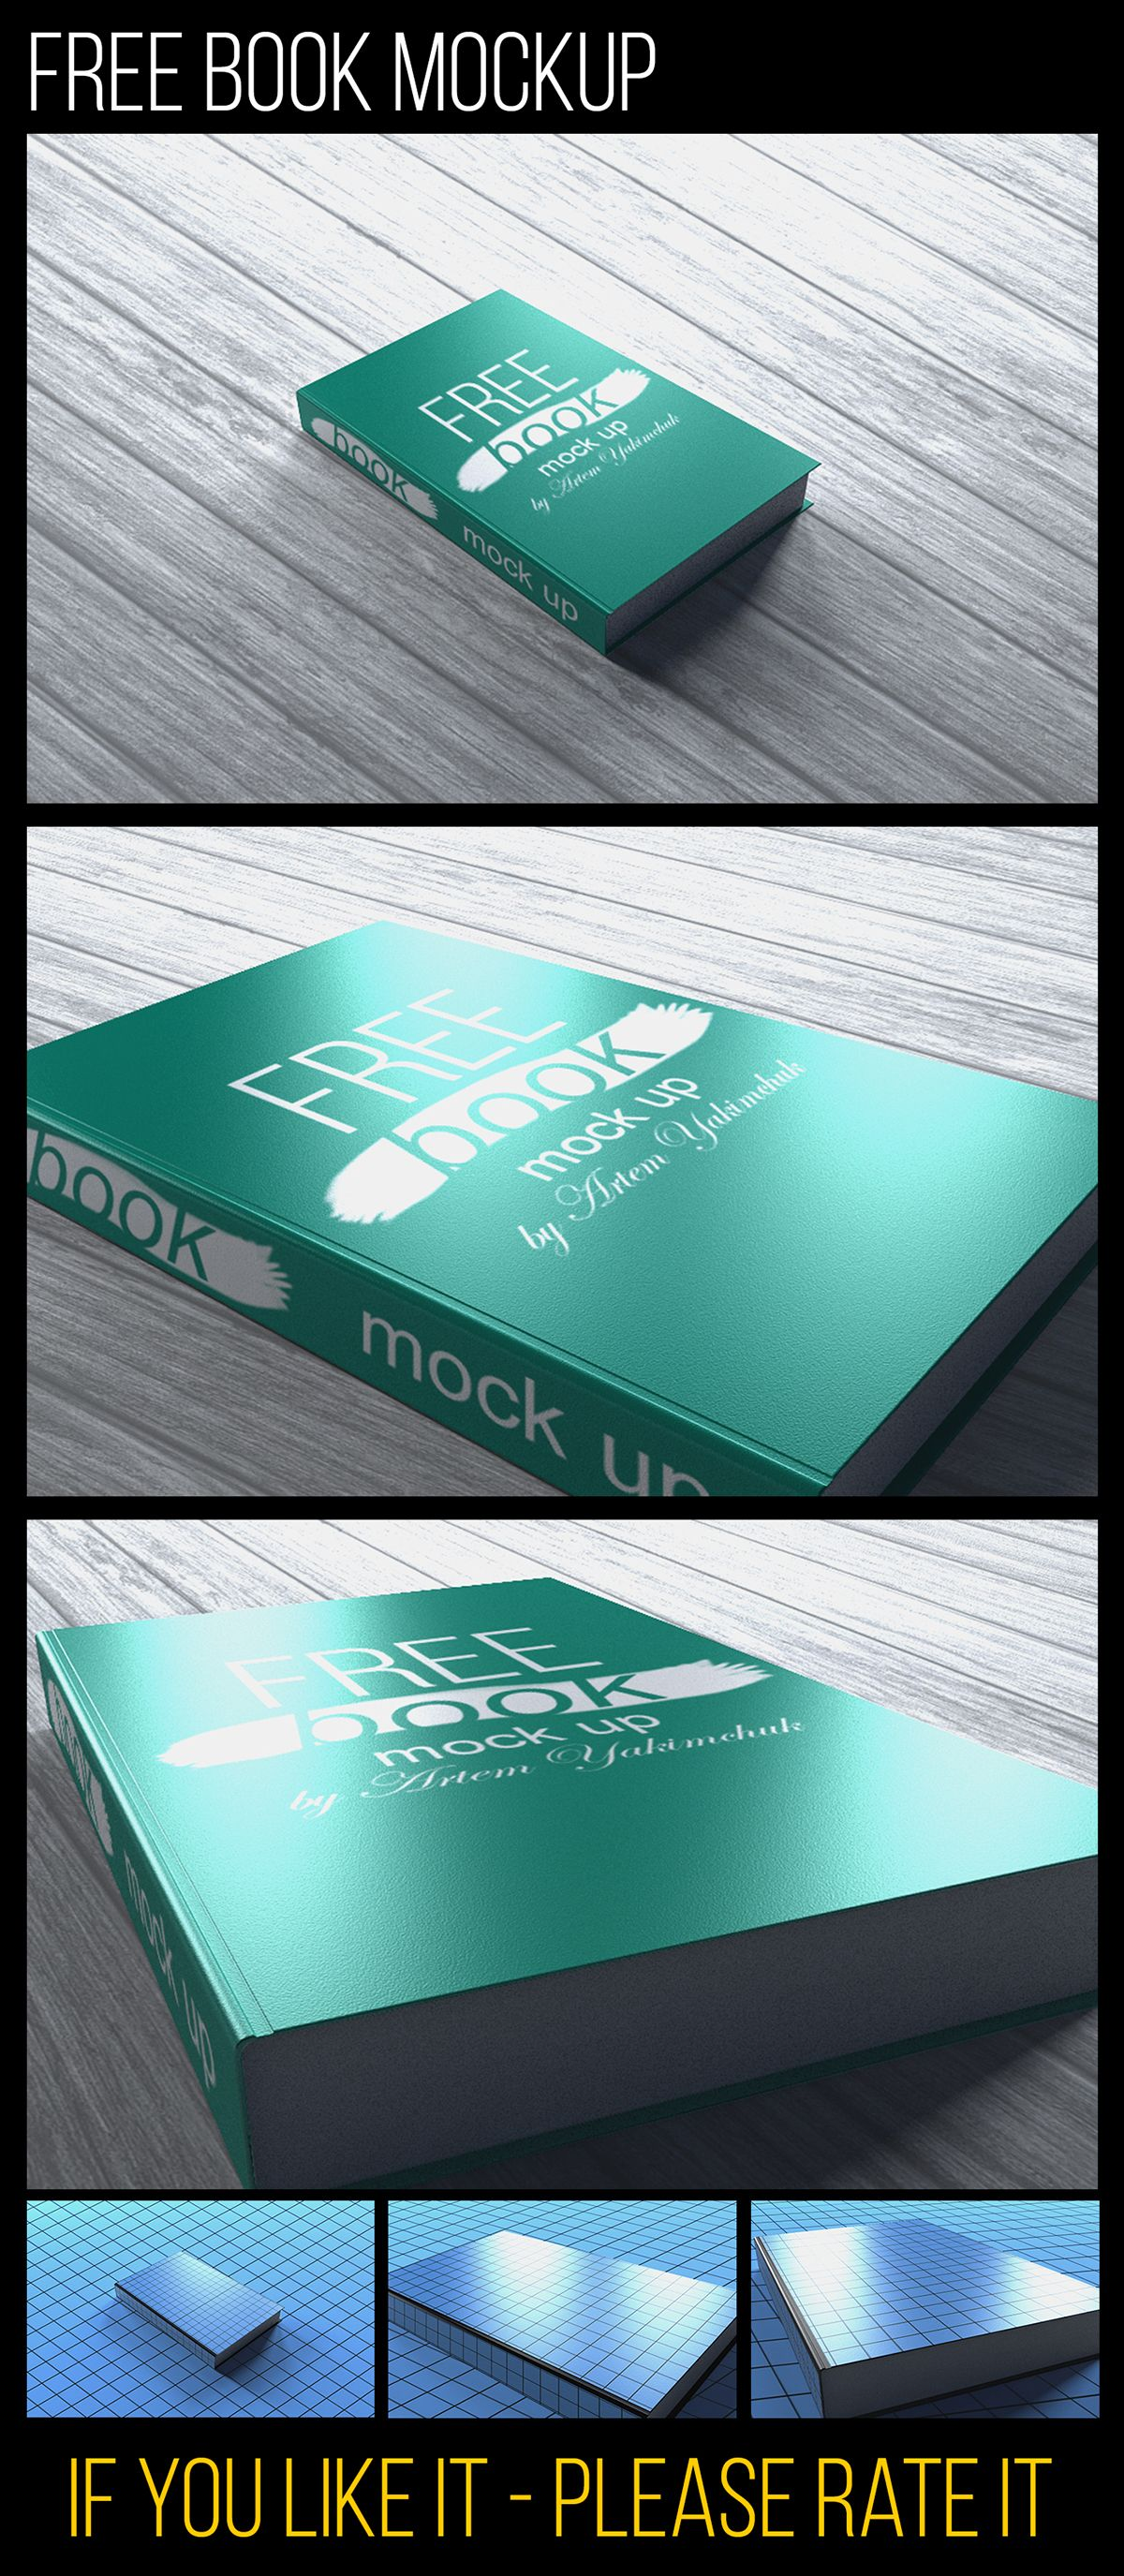 Free book mockup freebies book display free graphic design mockup free book mockup freebies book display free graphic design mockup presentation psd resource showcase template alramifo Image collections